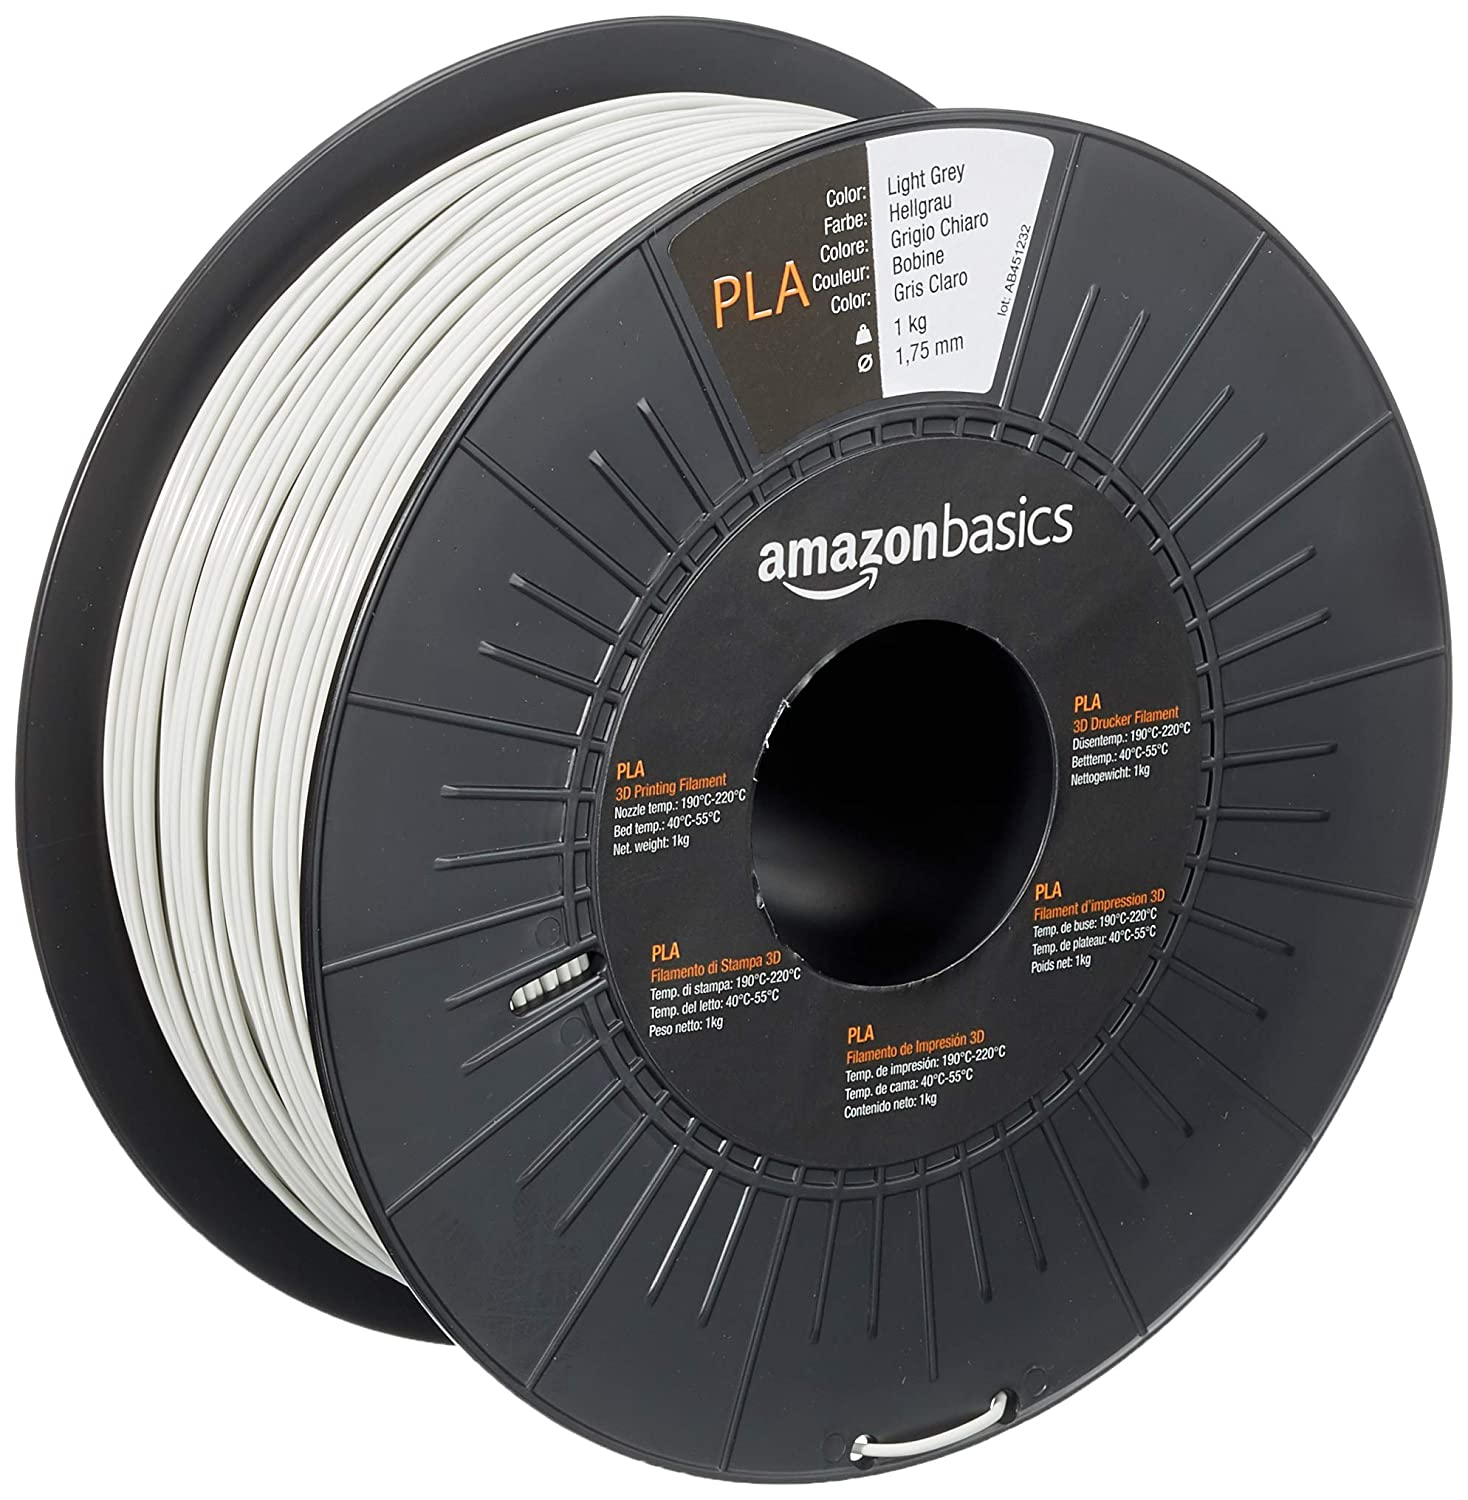 AmazonBasics PLA 3D Printer Filament, 1.75mm, Light Grey , 1 kg Spool